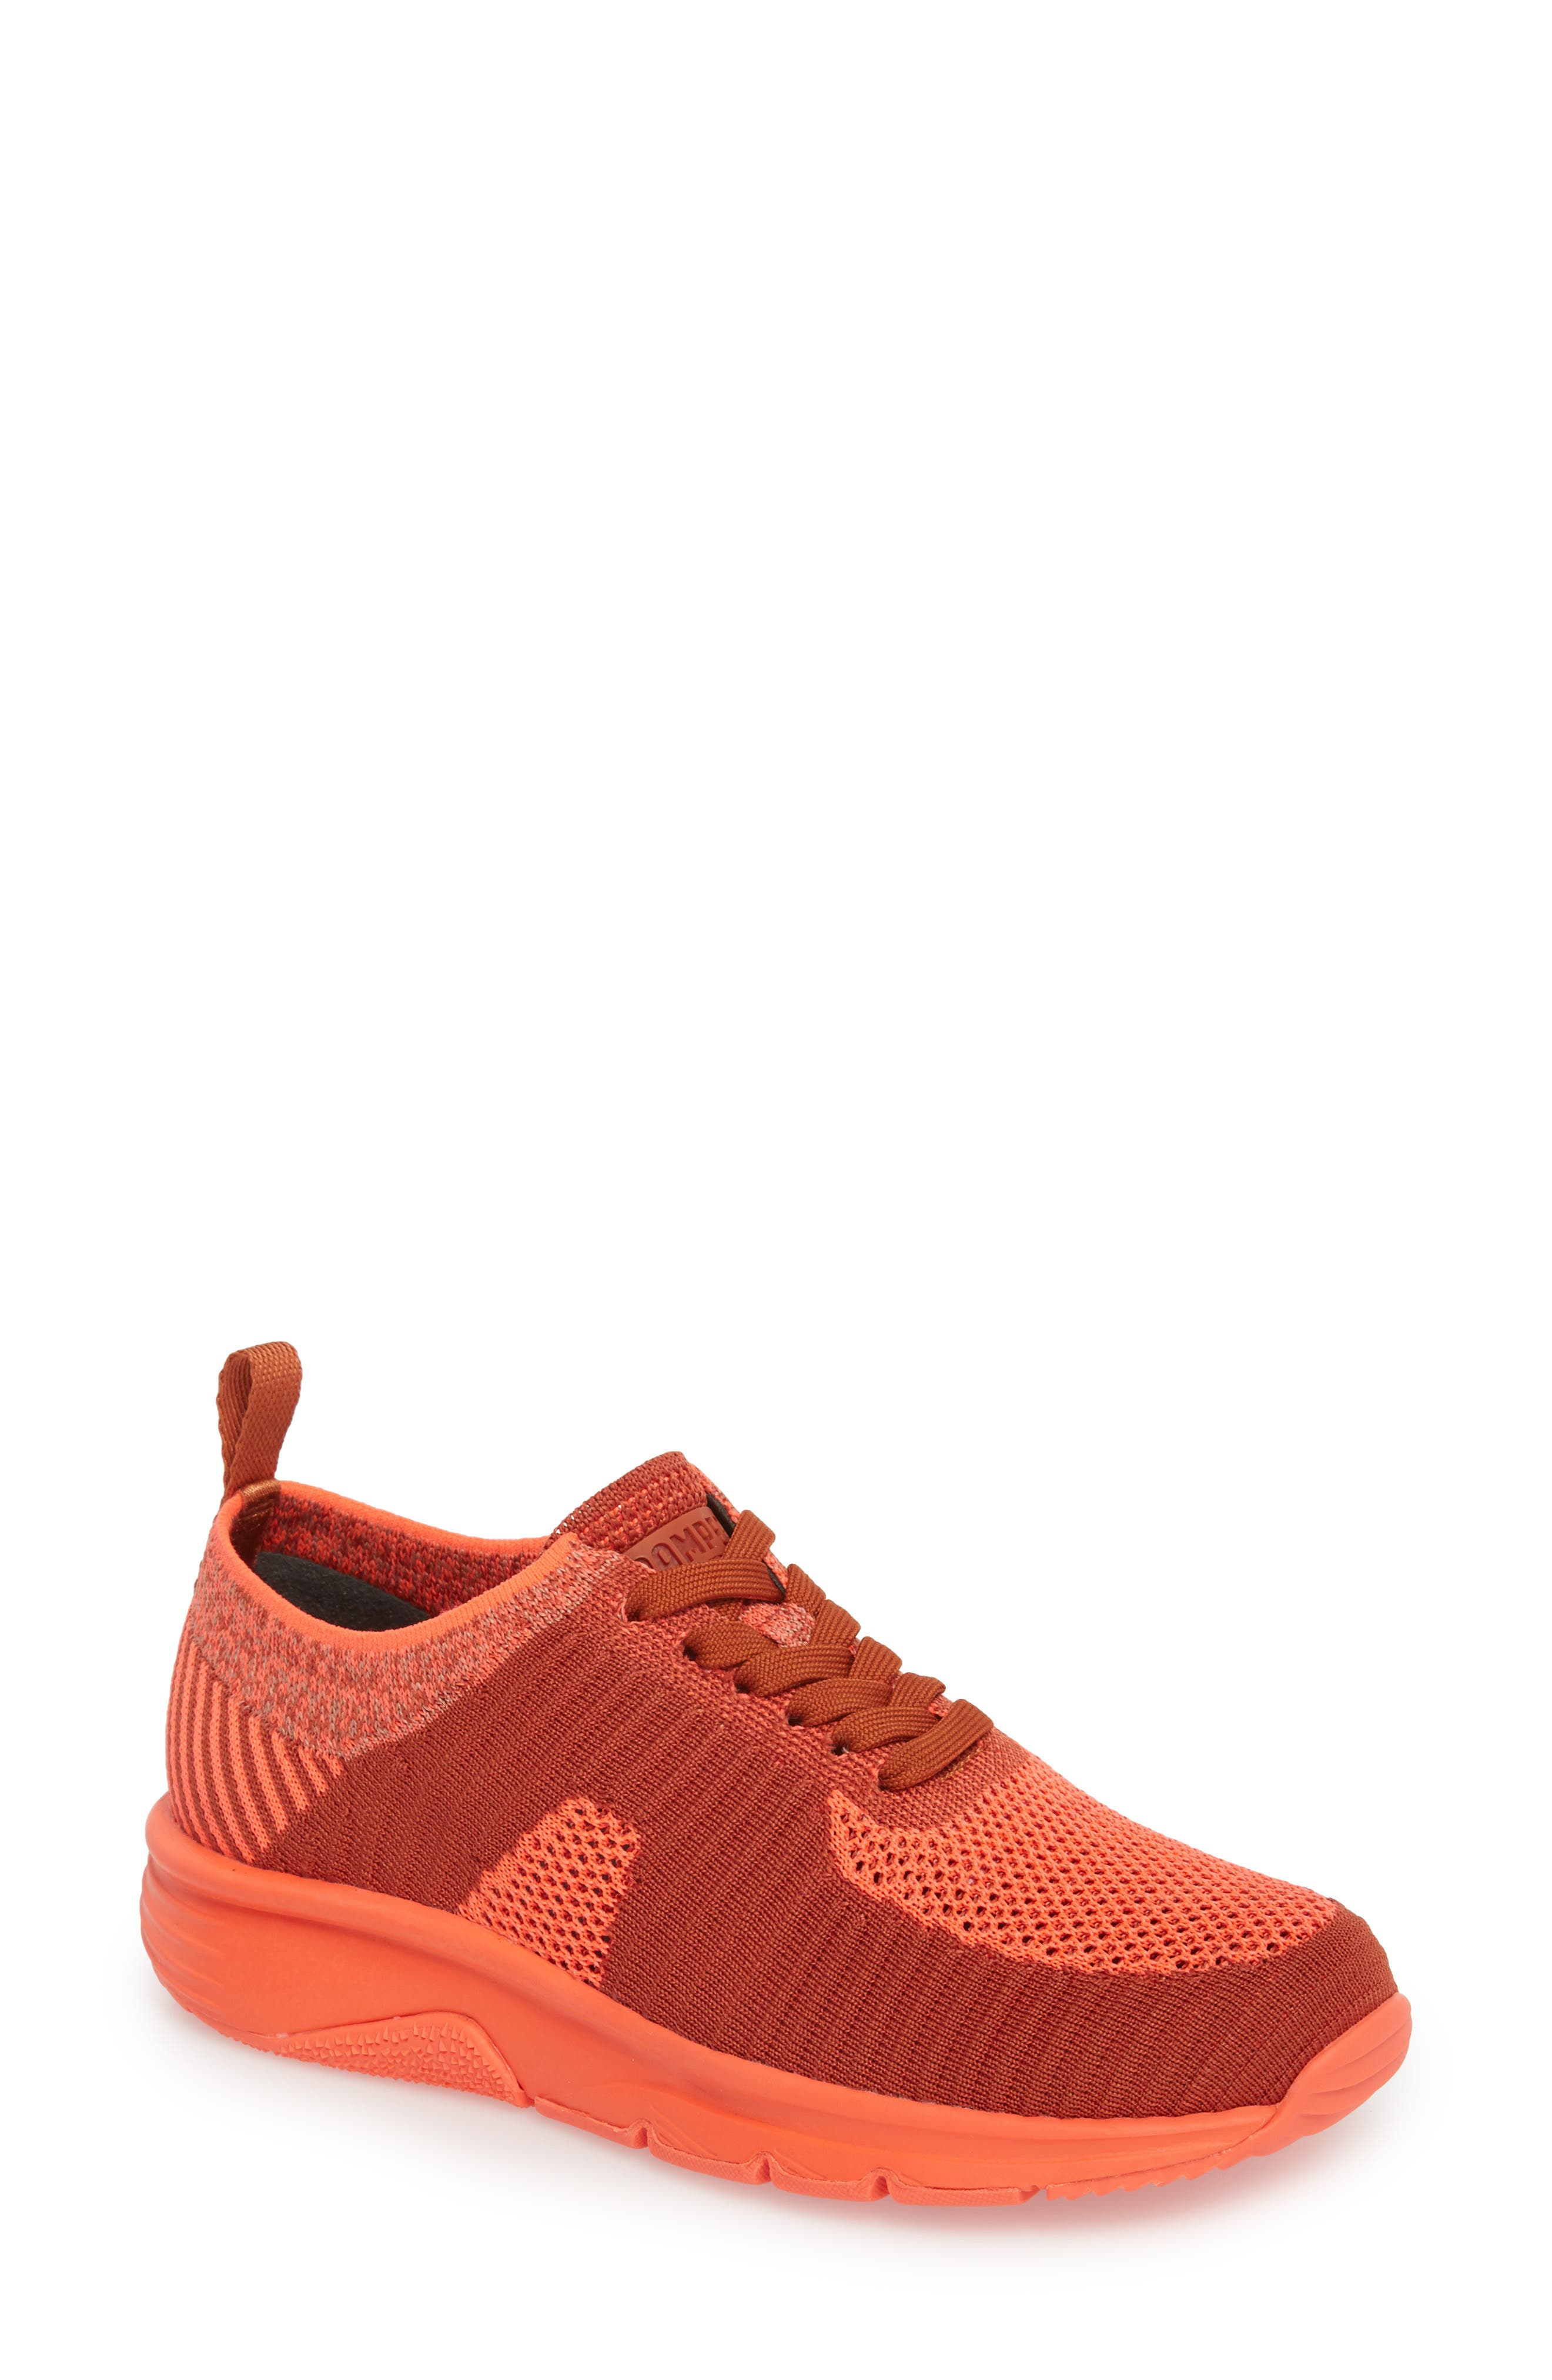 Drift Knit Sneaker,                         Main,                         color, RED - ASSORTED FABRIC